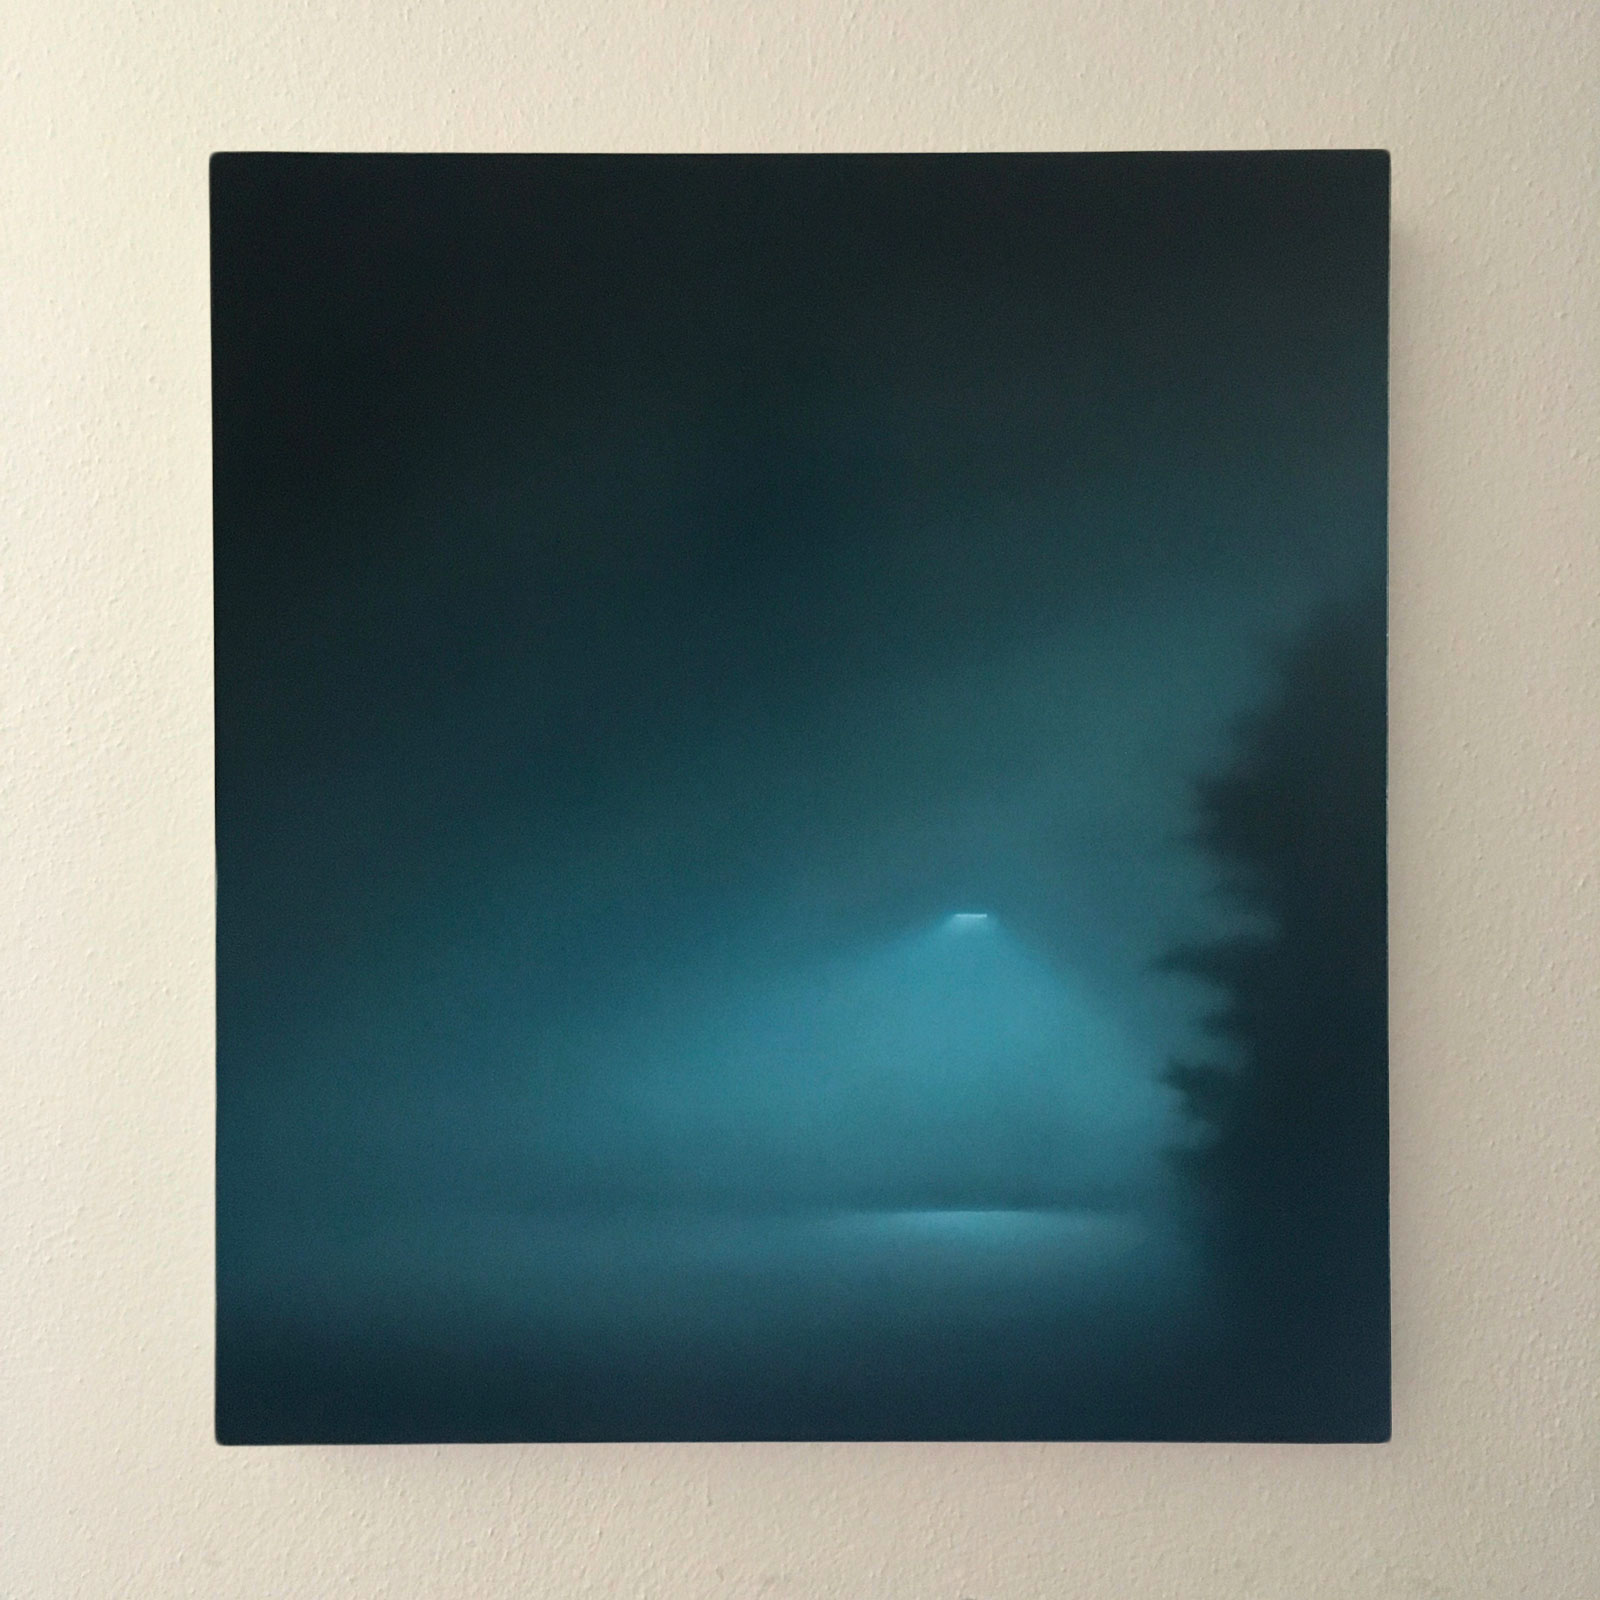 T#167-2019 (The lamp), oil on canvas, 60x55cm